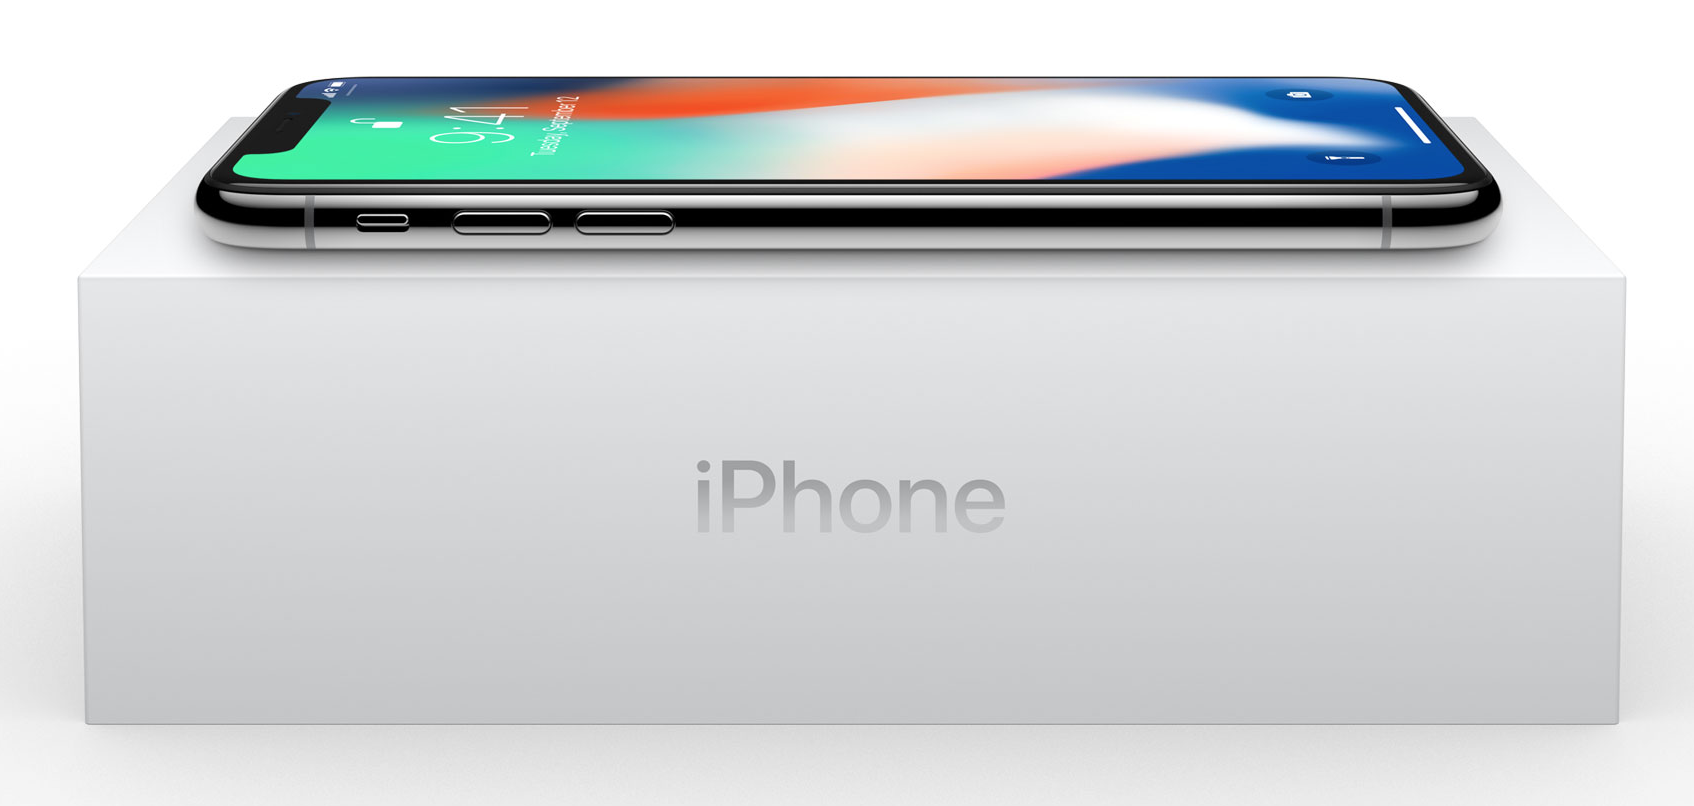 Image result for iphone x with box